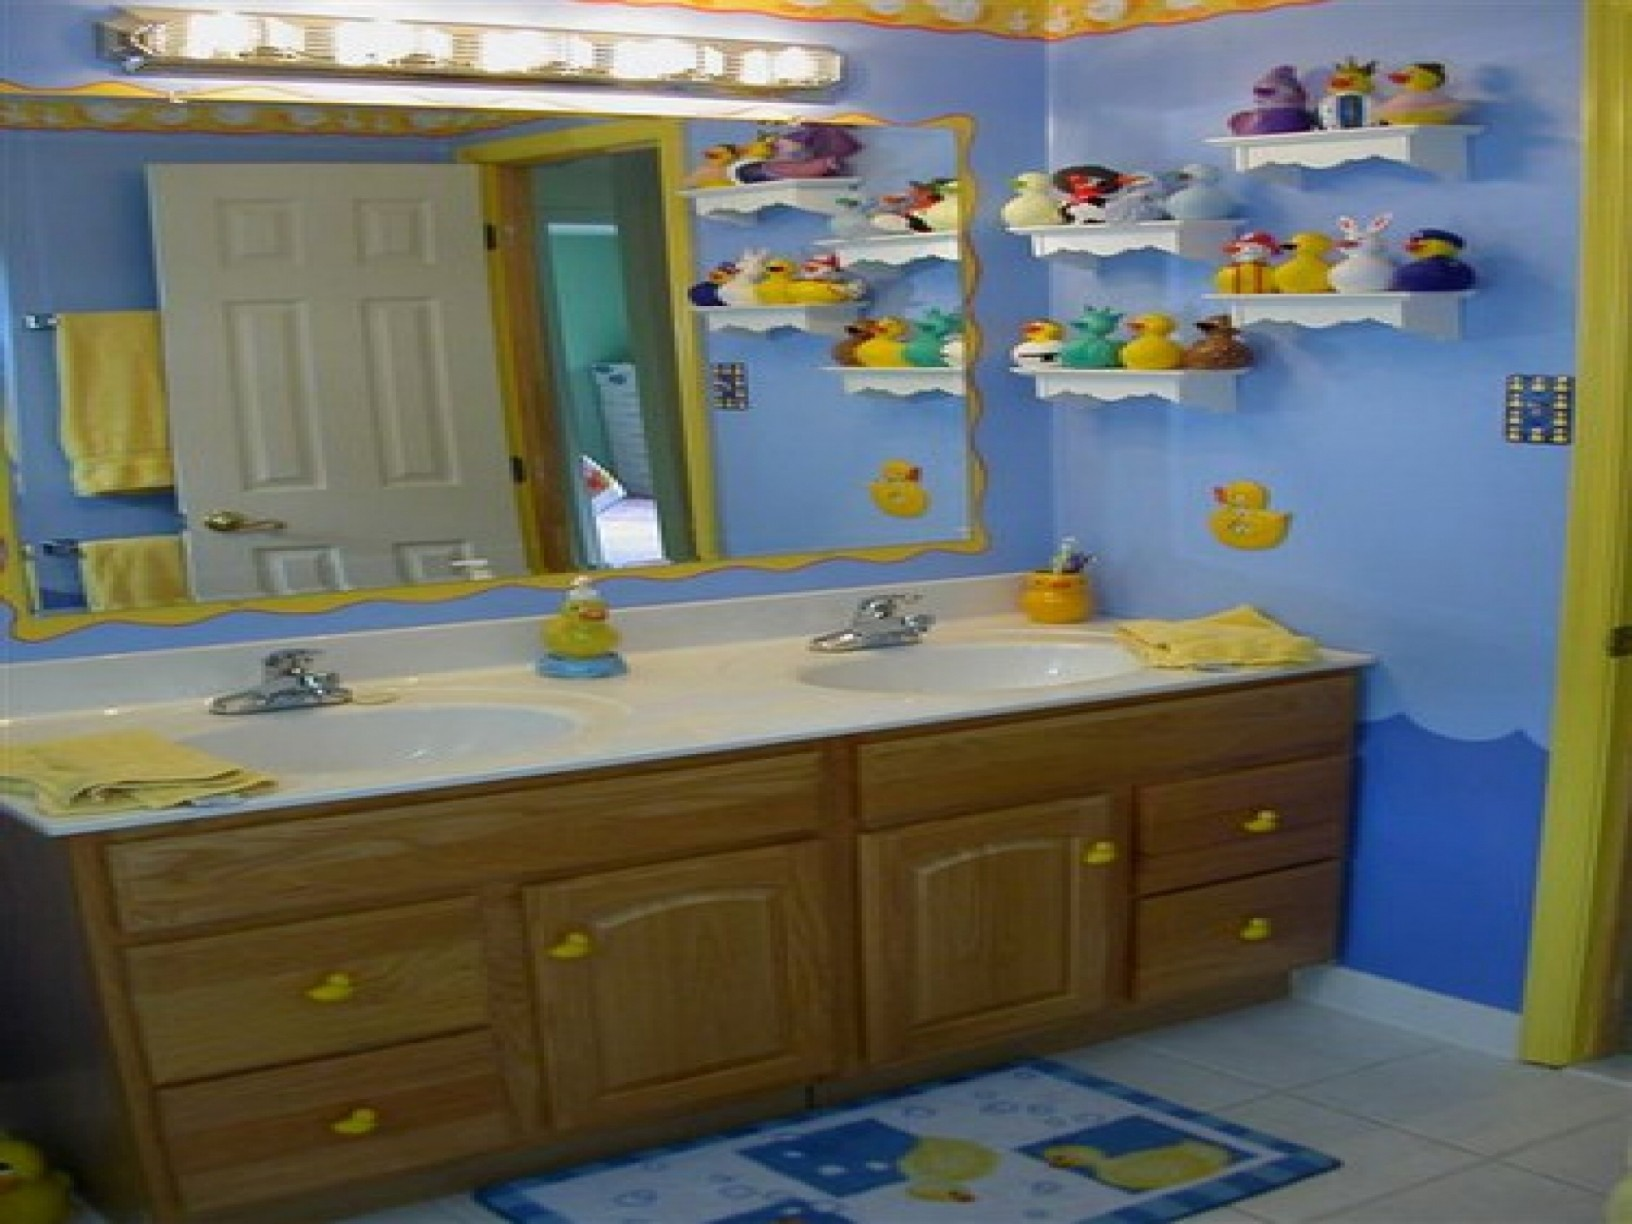 Beautiful Rubber Duck Bathroom Set Decoration Design Ideas Gallery Image And Wallpaper